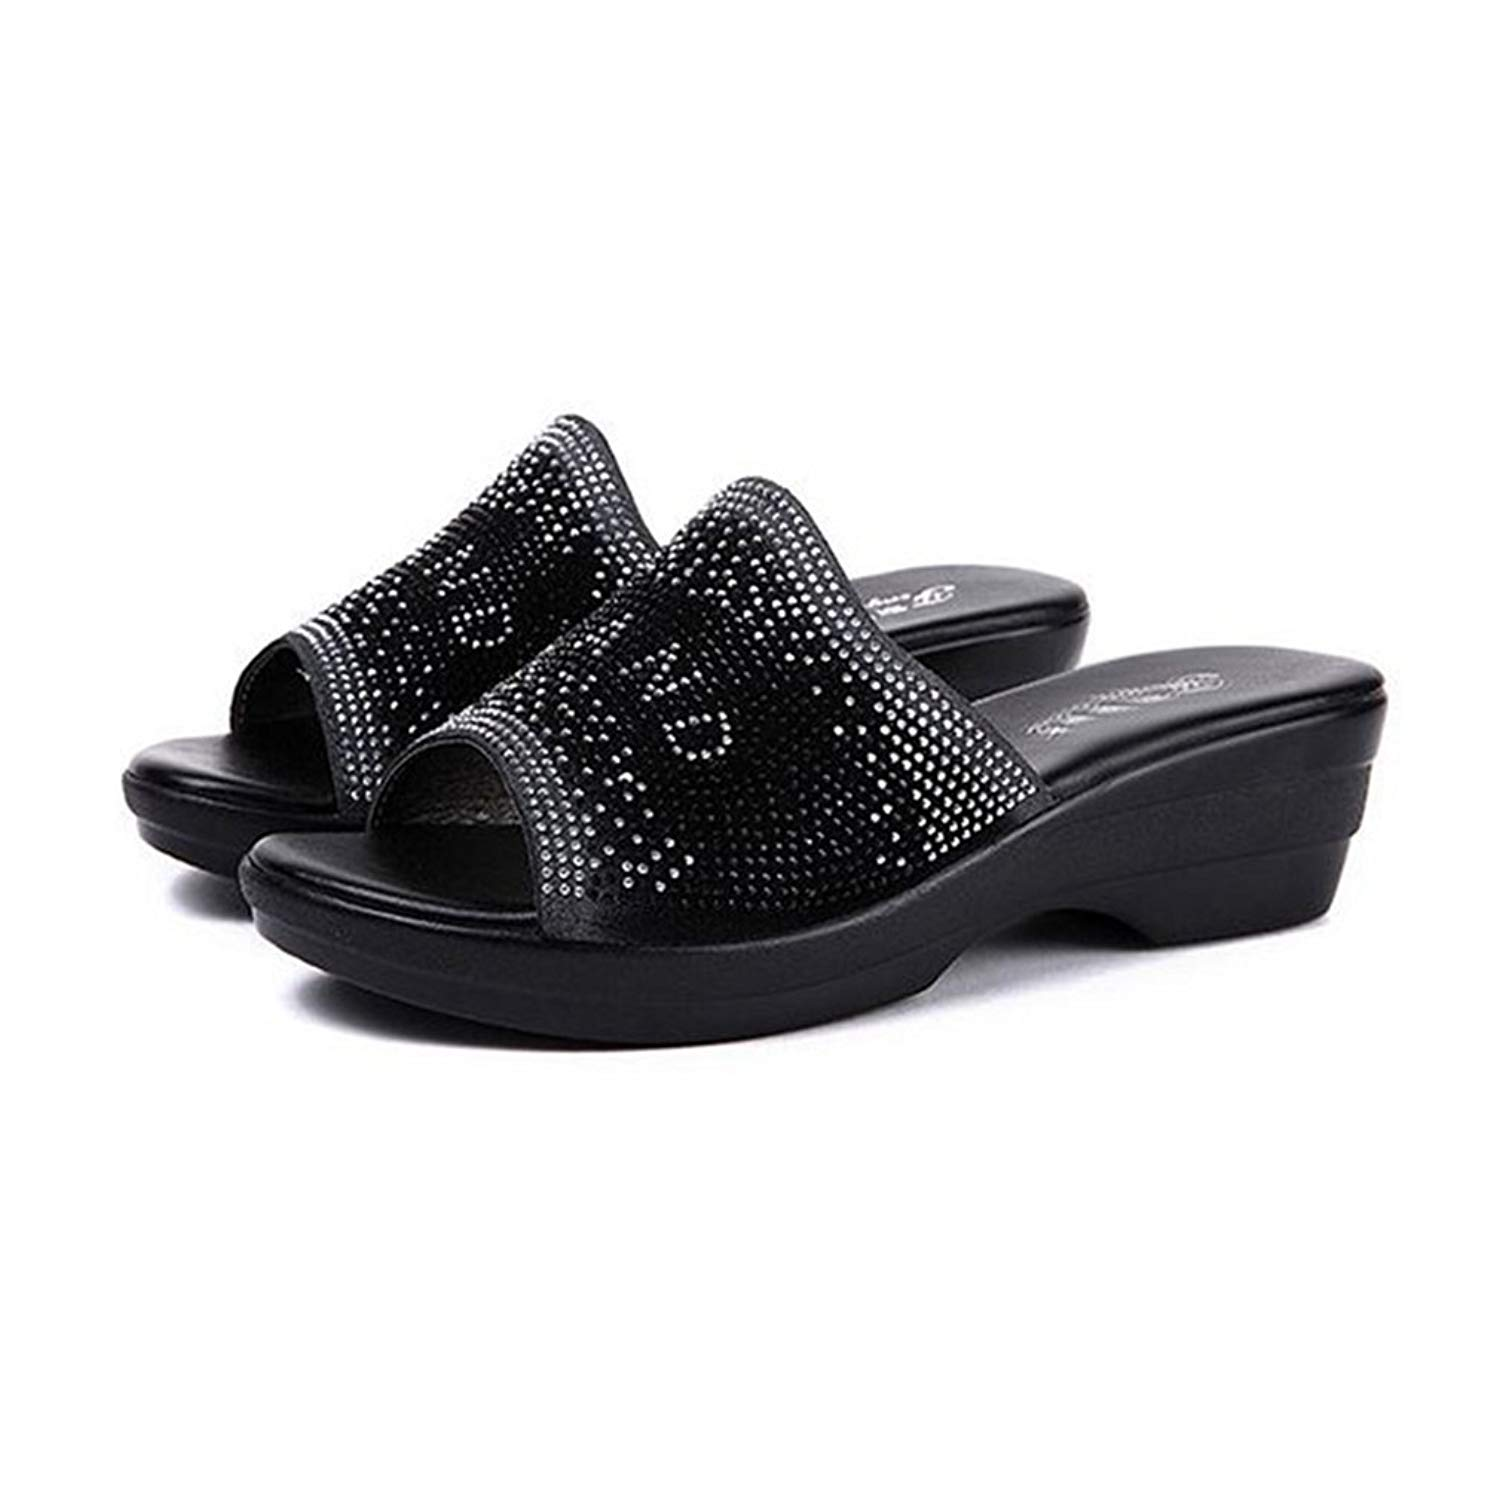 90eb4d2ba7662 Get Quotations · GIY Women s Low Wedges Slide Sandals Rhinestone Platform  Comfort Anti-Slip Sparkly Dress Sandals Black